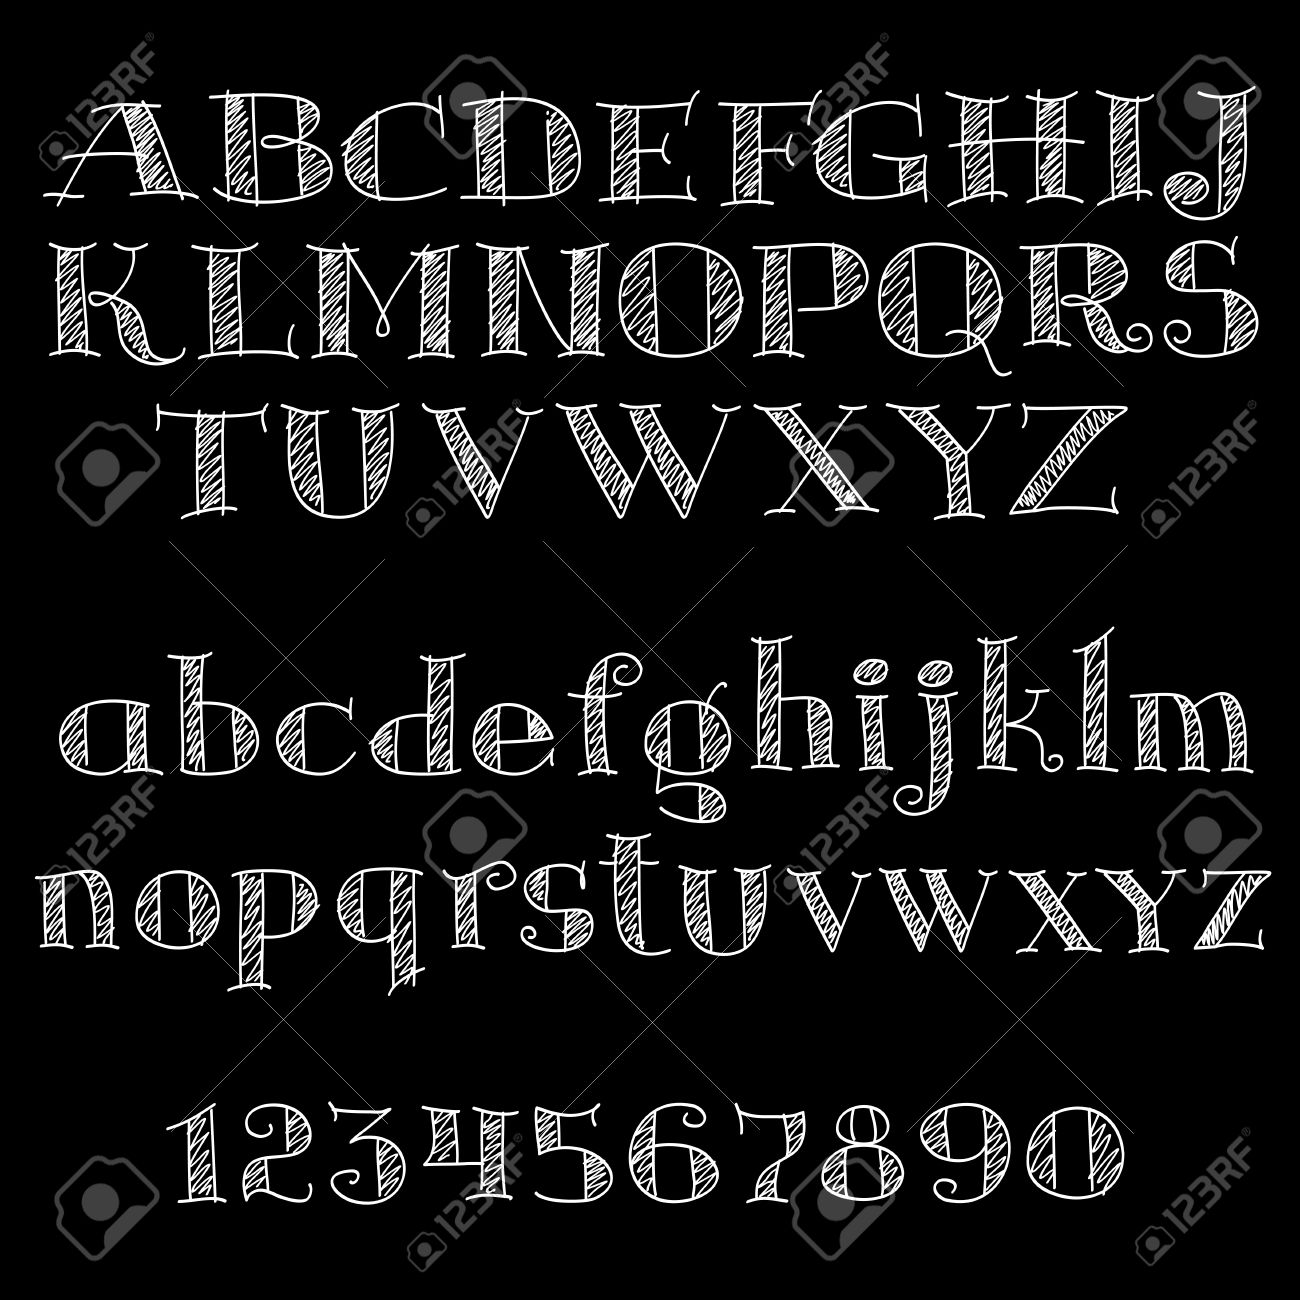 Chalk alphabet letters and numbers on blackboard with uppercase